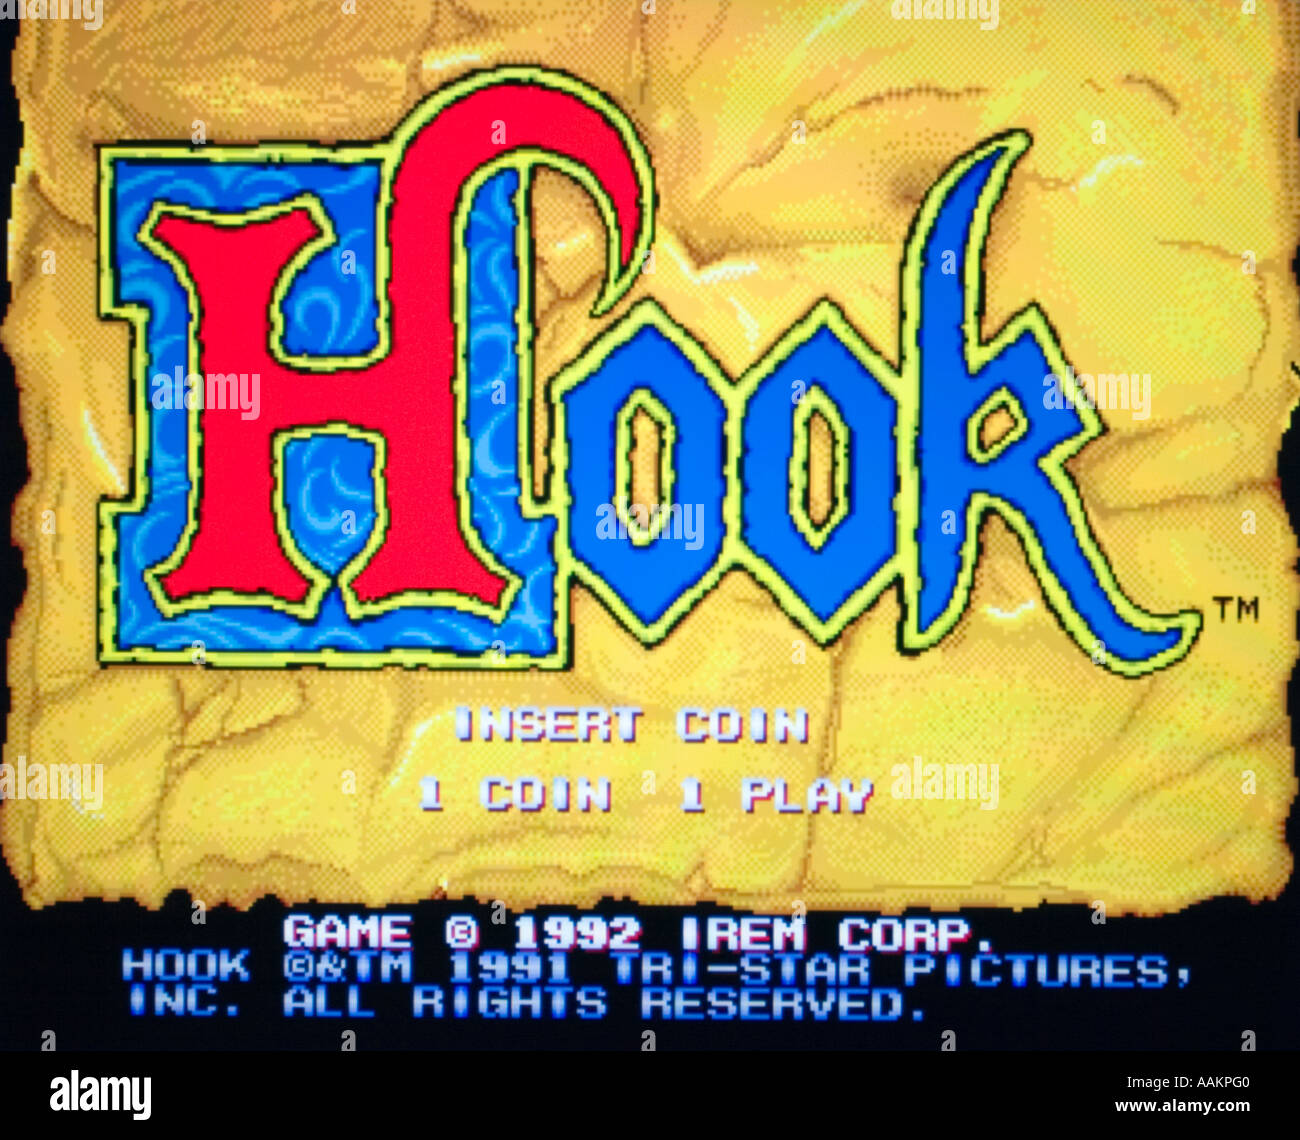 Games similar to the hook up